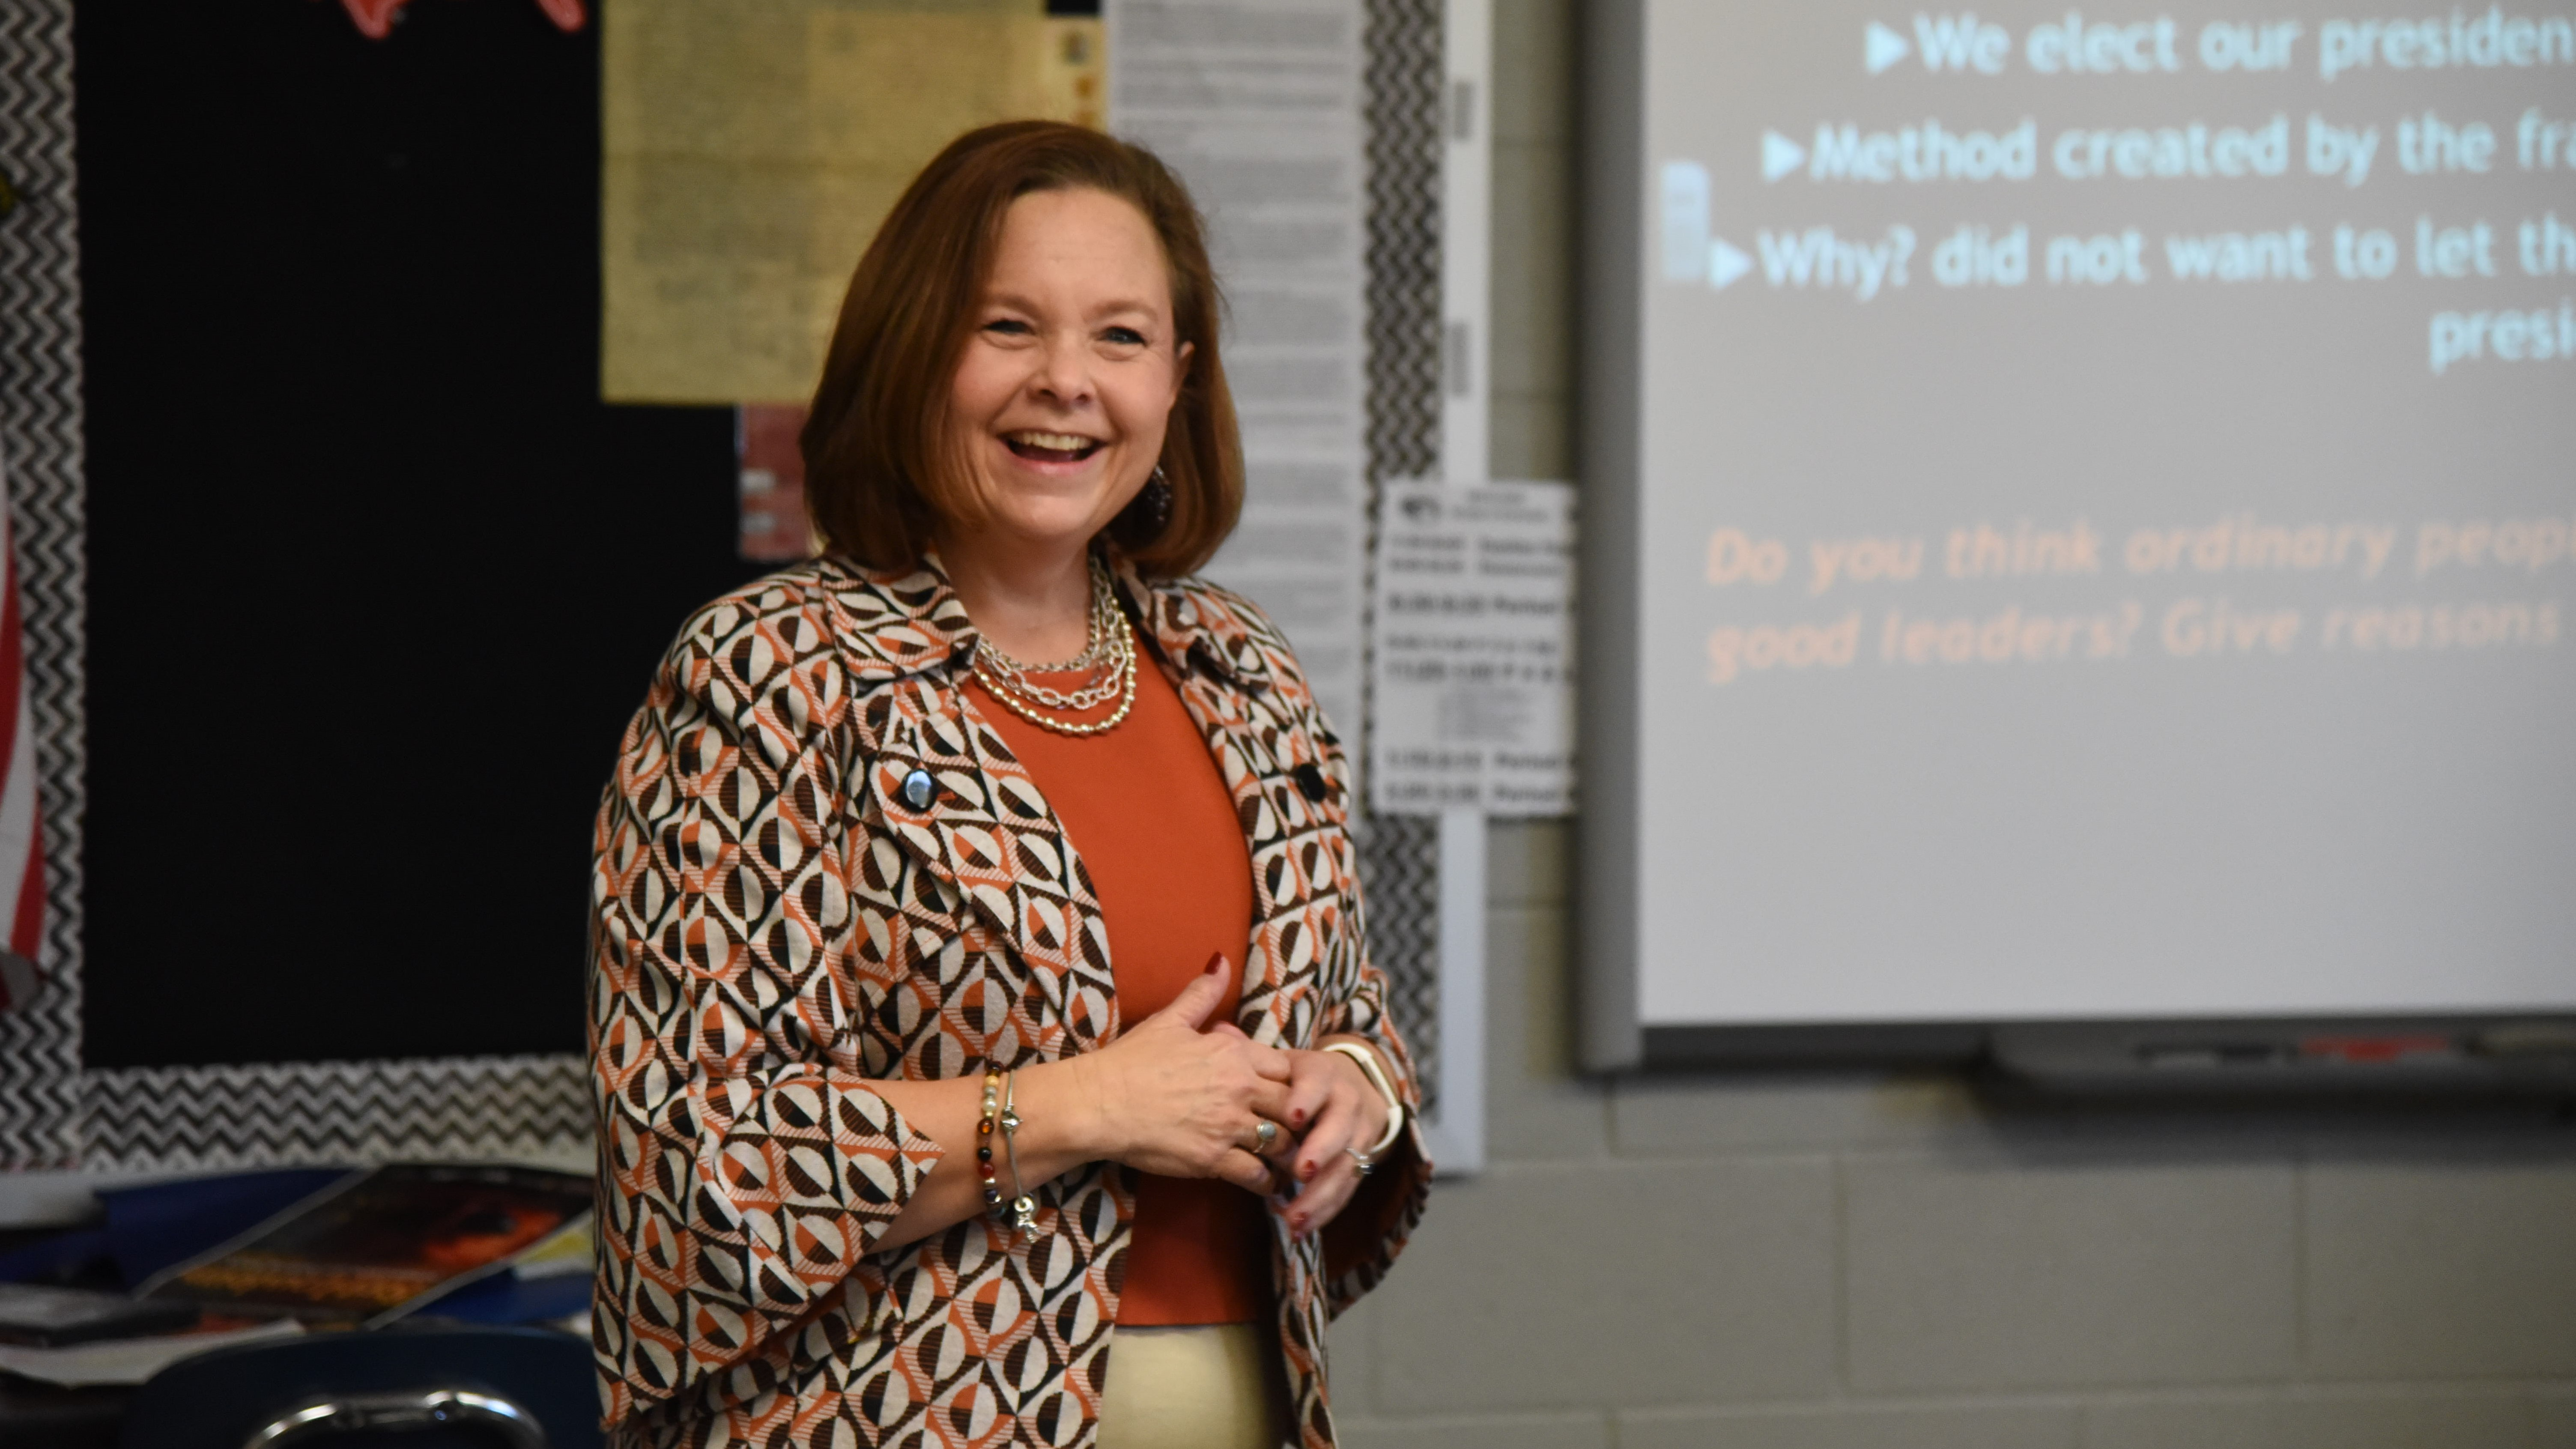 U.S. Bankruptcy Judge Suzanne Bauknight speaks to a class at Powell Middle School while serving as Principal For A Day on Nov. 11, 2019.